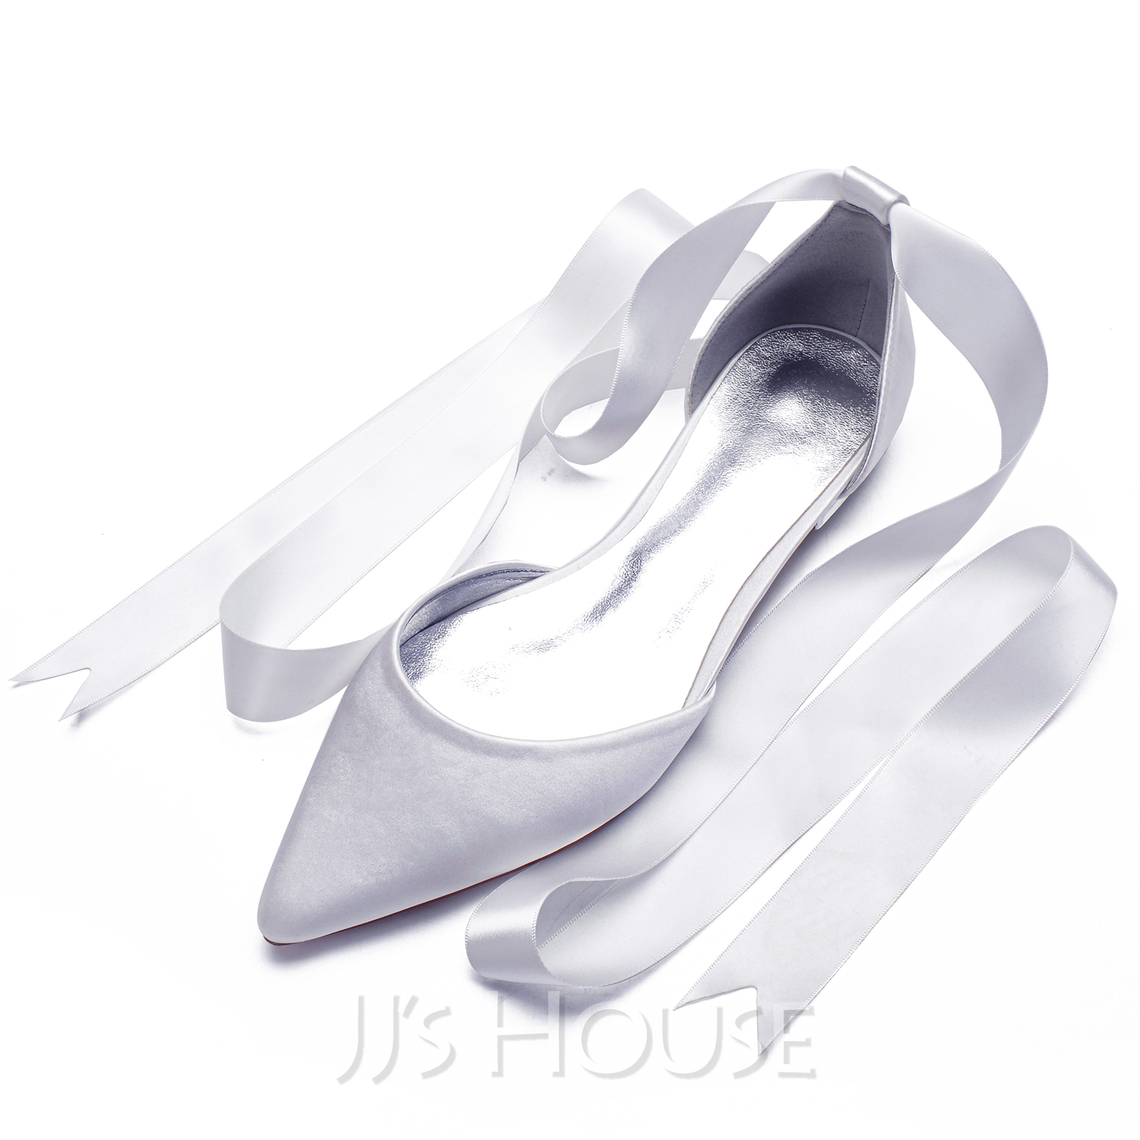 Women's Satin Flat Heel Pumps With Bowknot Lace-up